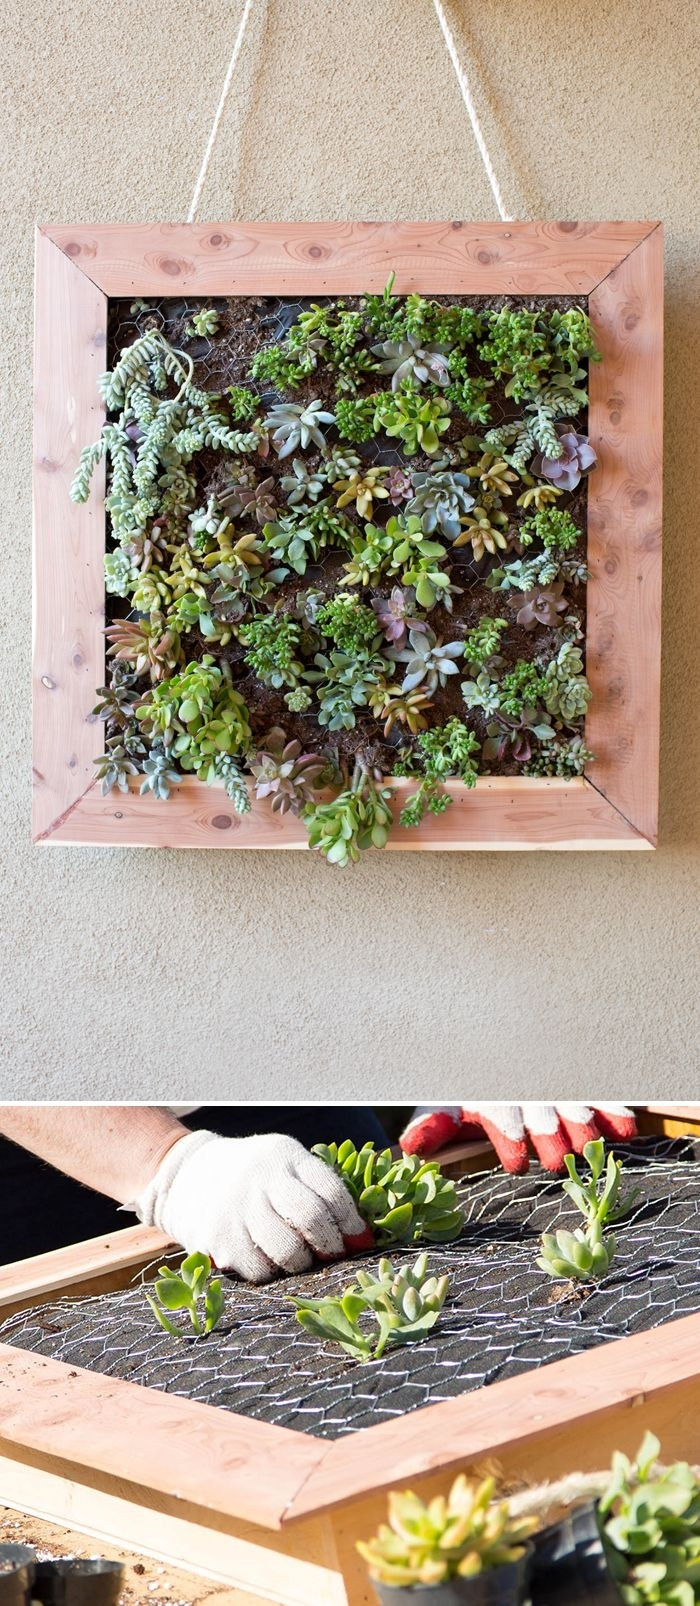 97 Best Succulents Images On Pinterest House Plants Gardening And Within Succulent Wall Art (View 1 of 20)